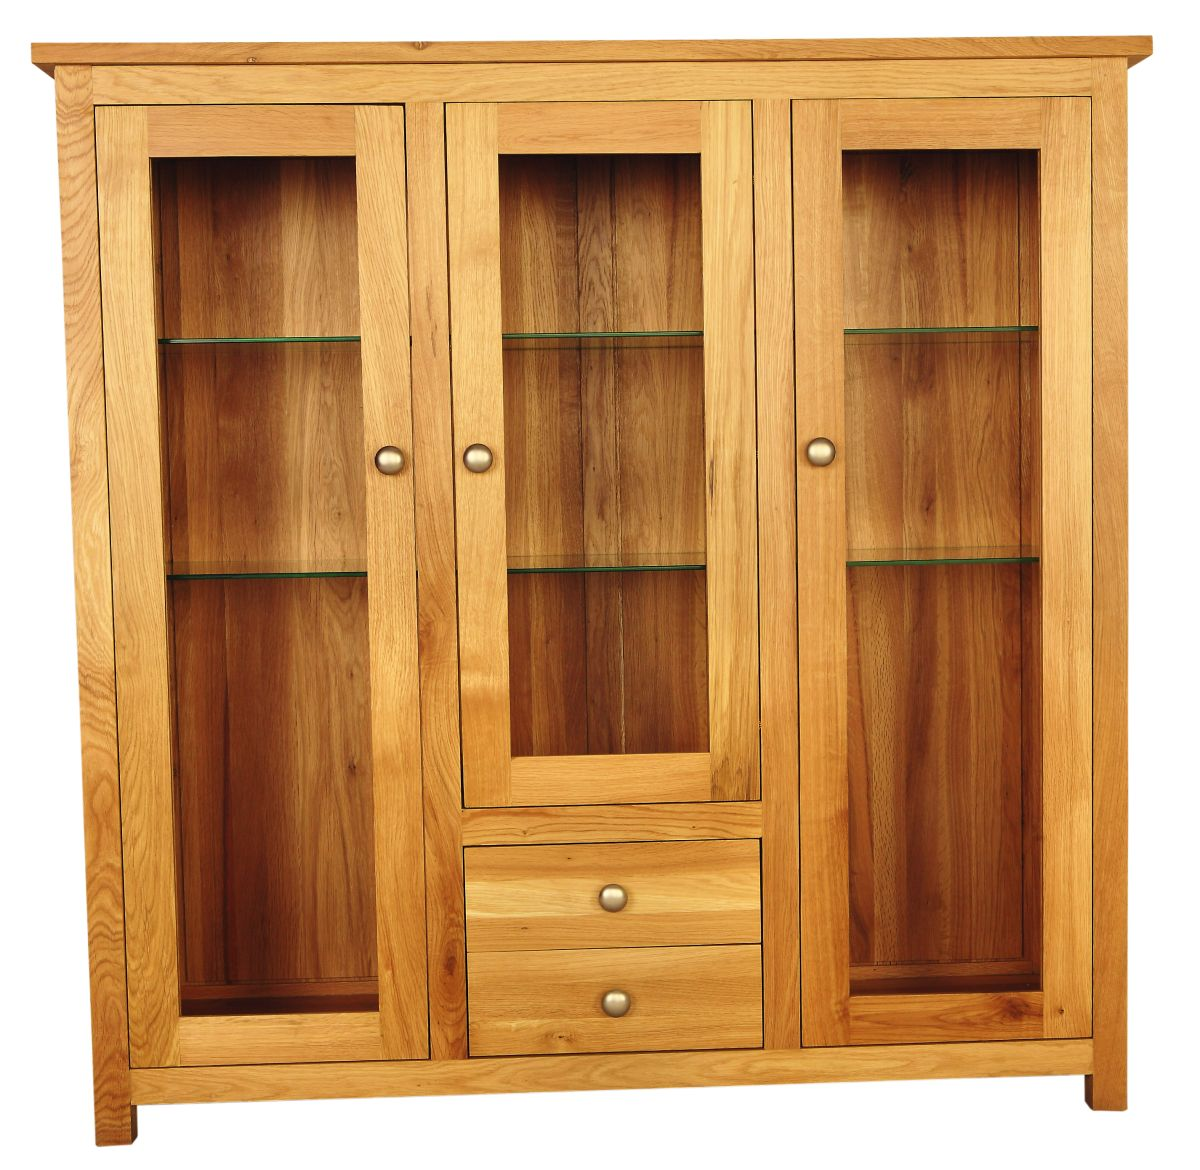 Solid Oak Display Cabinet, 3 Doors and 2 Drawers